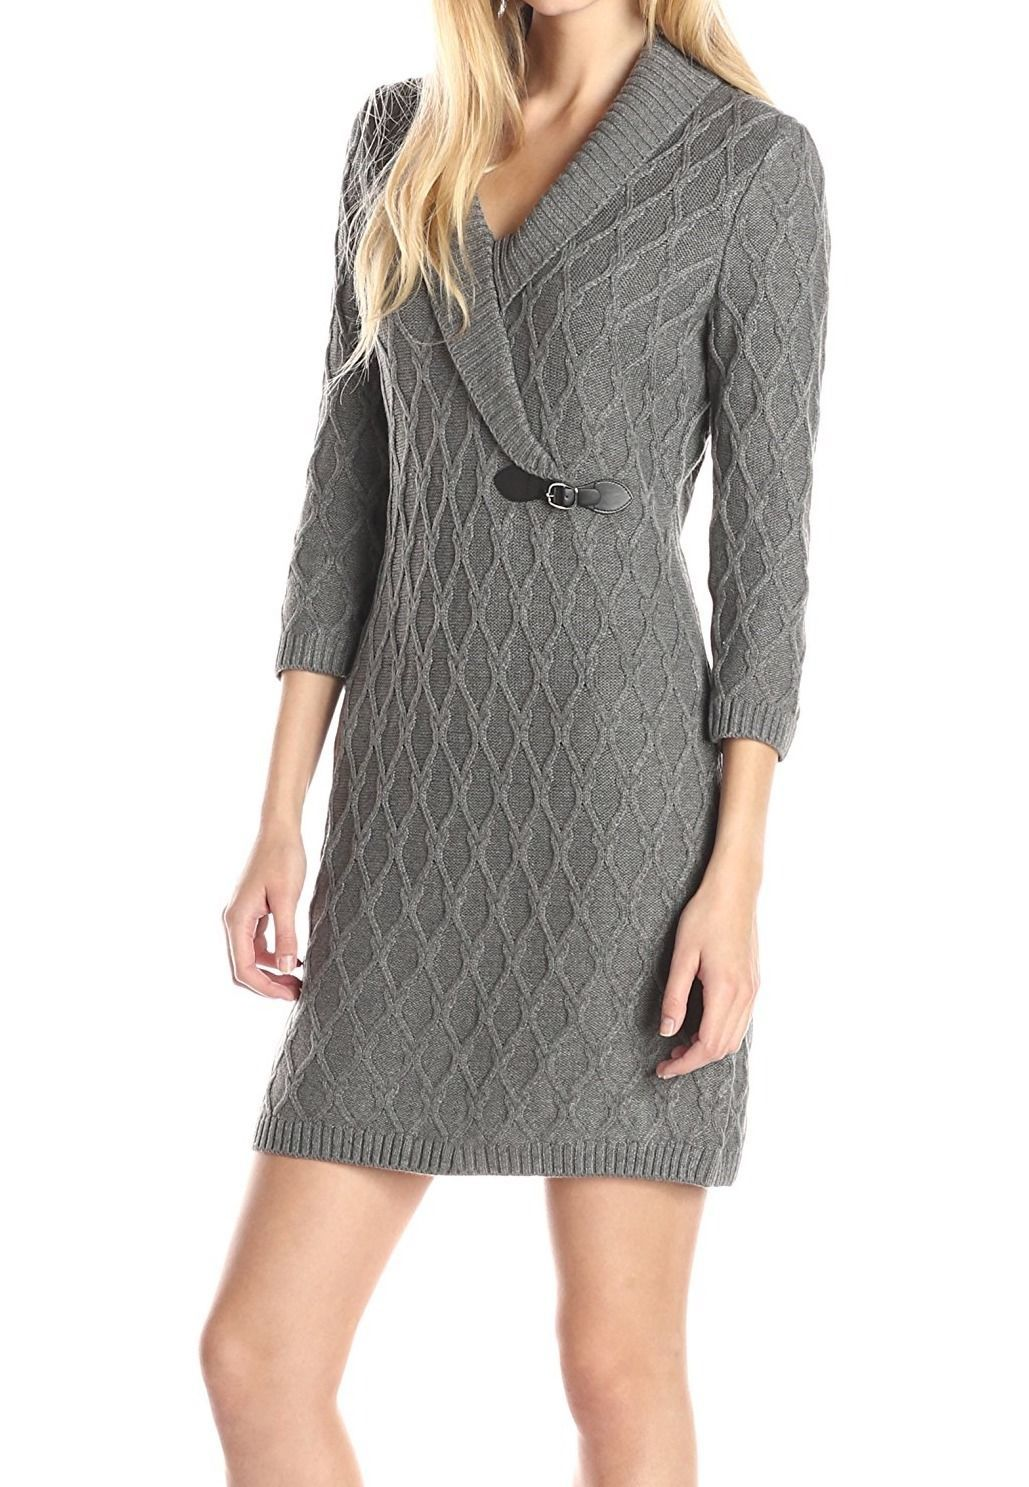 Calvin Klein NEW Gray Womens Size XL Cable-Knit Sweater Dress $134 ...